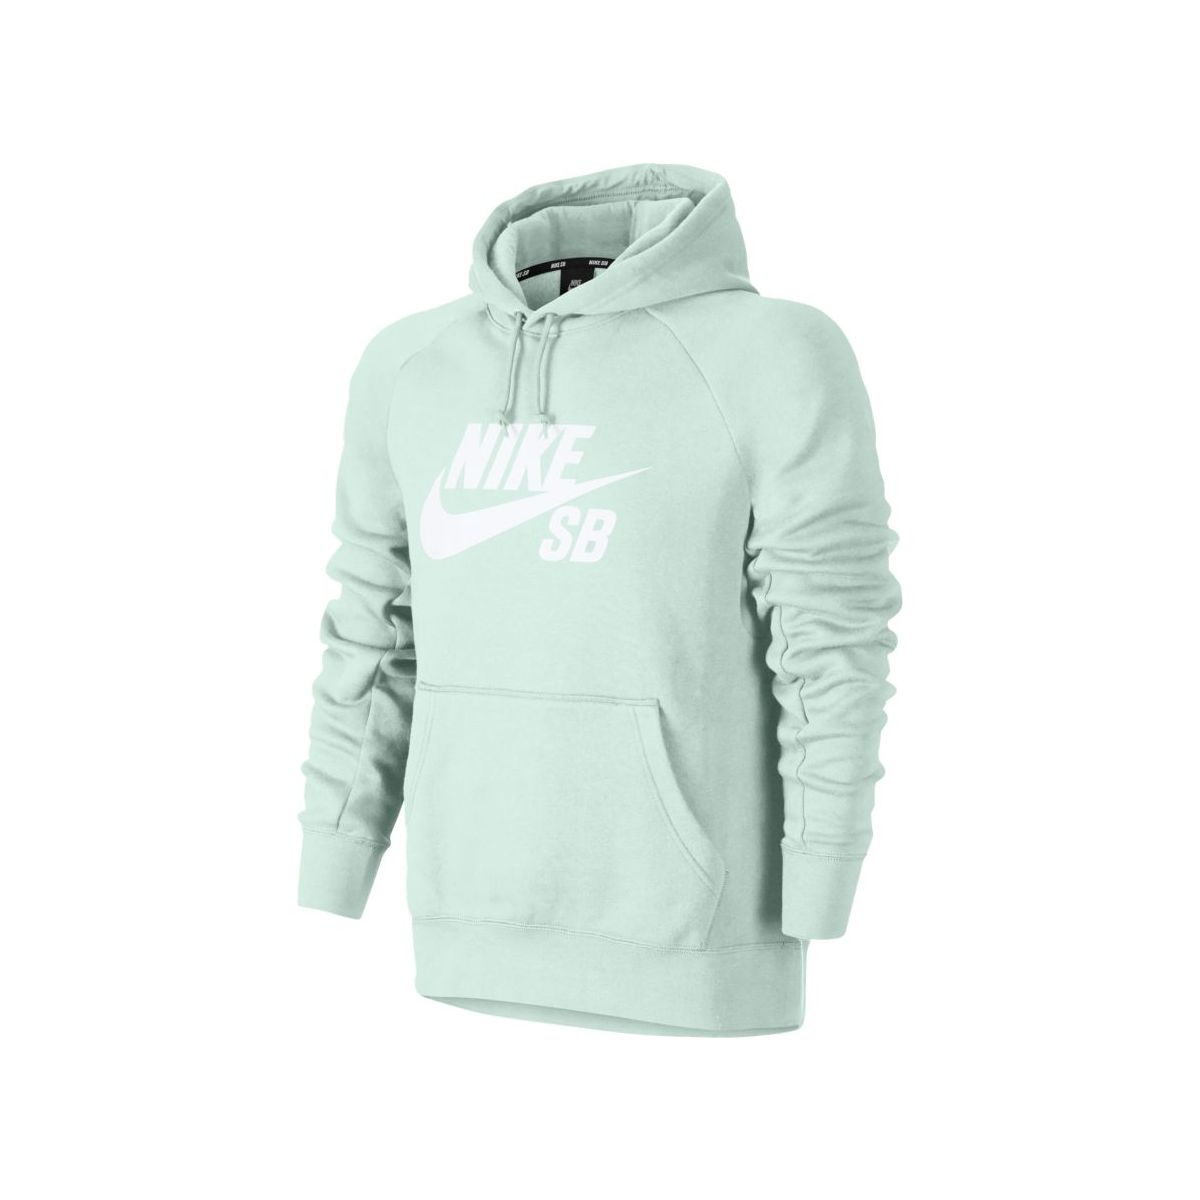 Bluza Nike SB Icon Hoodie Berely Grey / White